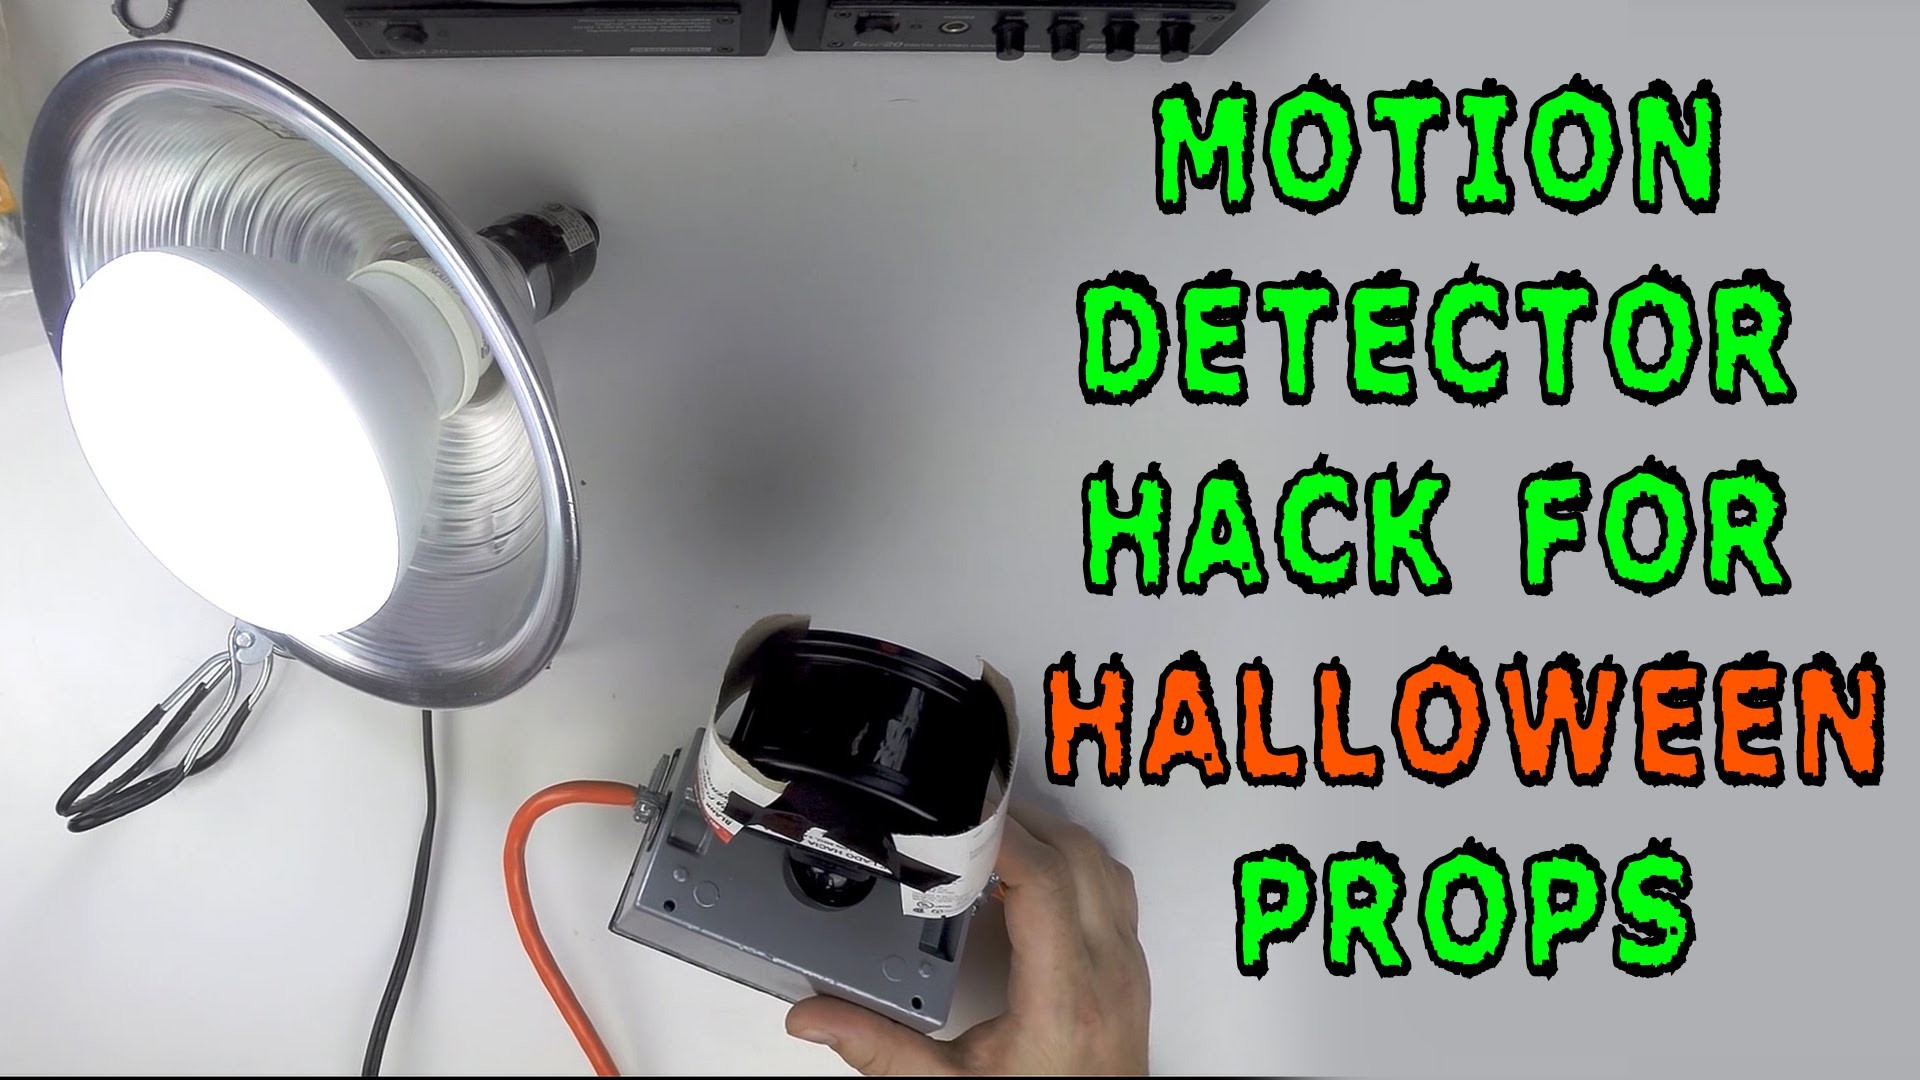 How To: Motion Detector Hack for Halloween Props